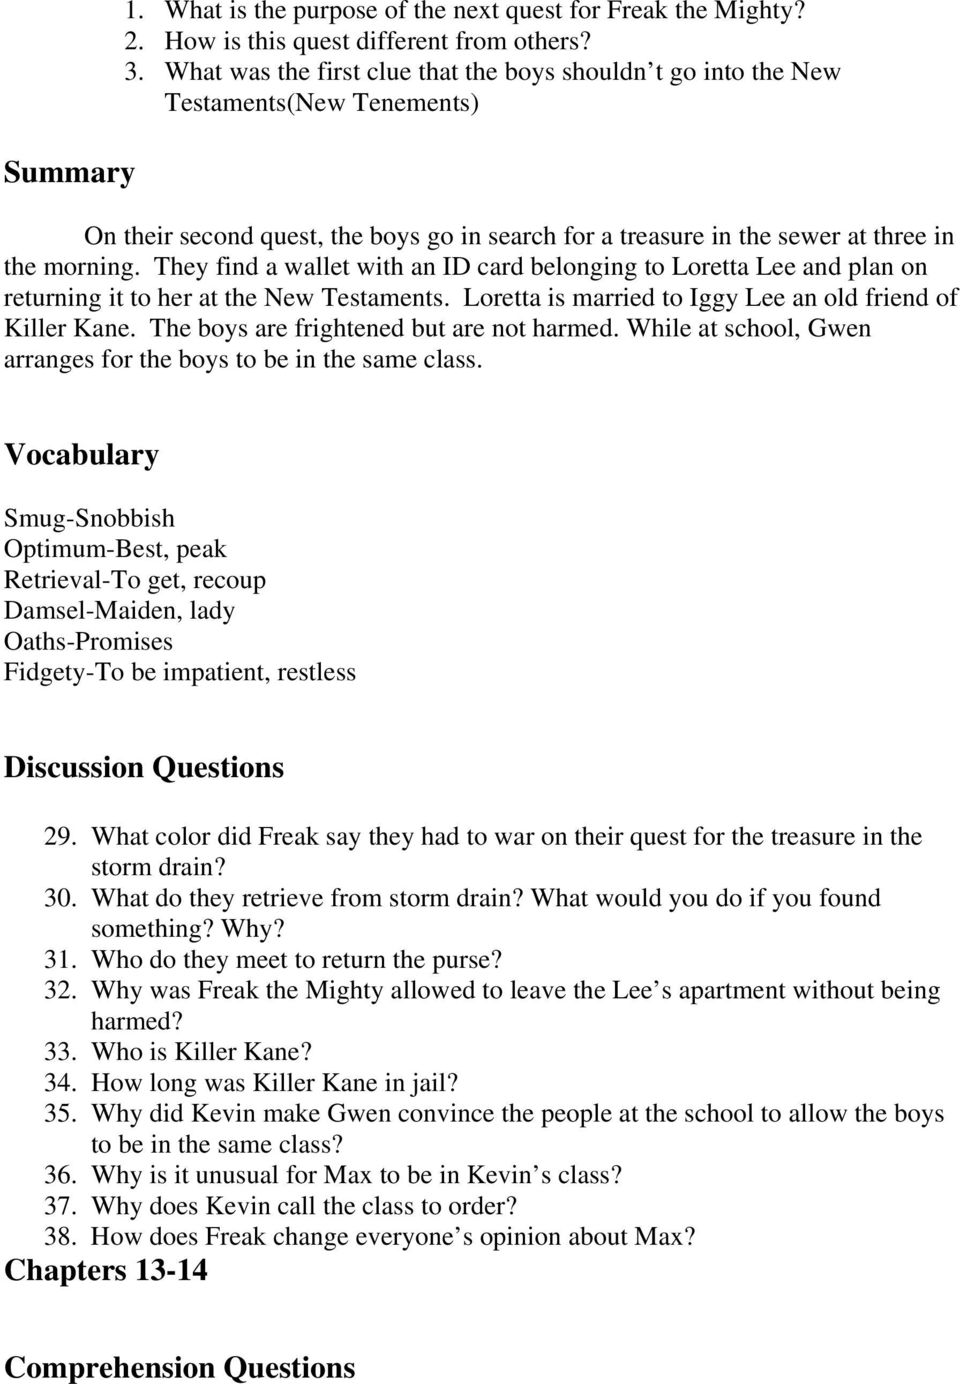 Freak The Mighty Pdf Answers